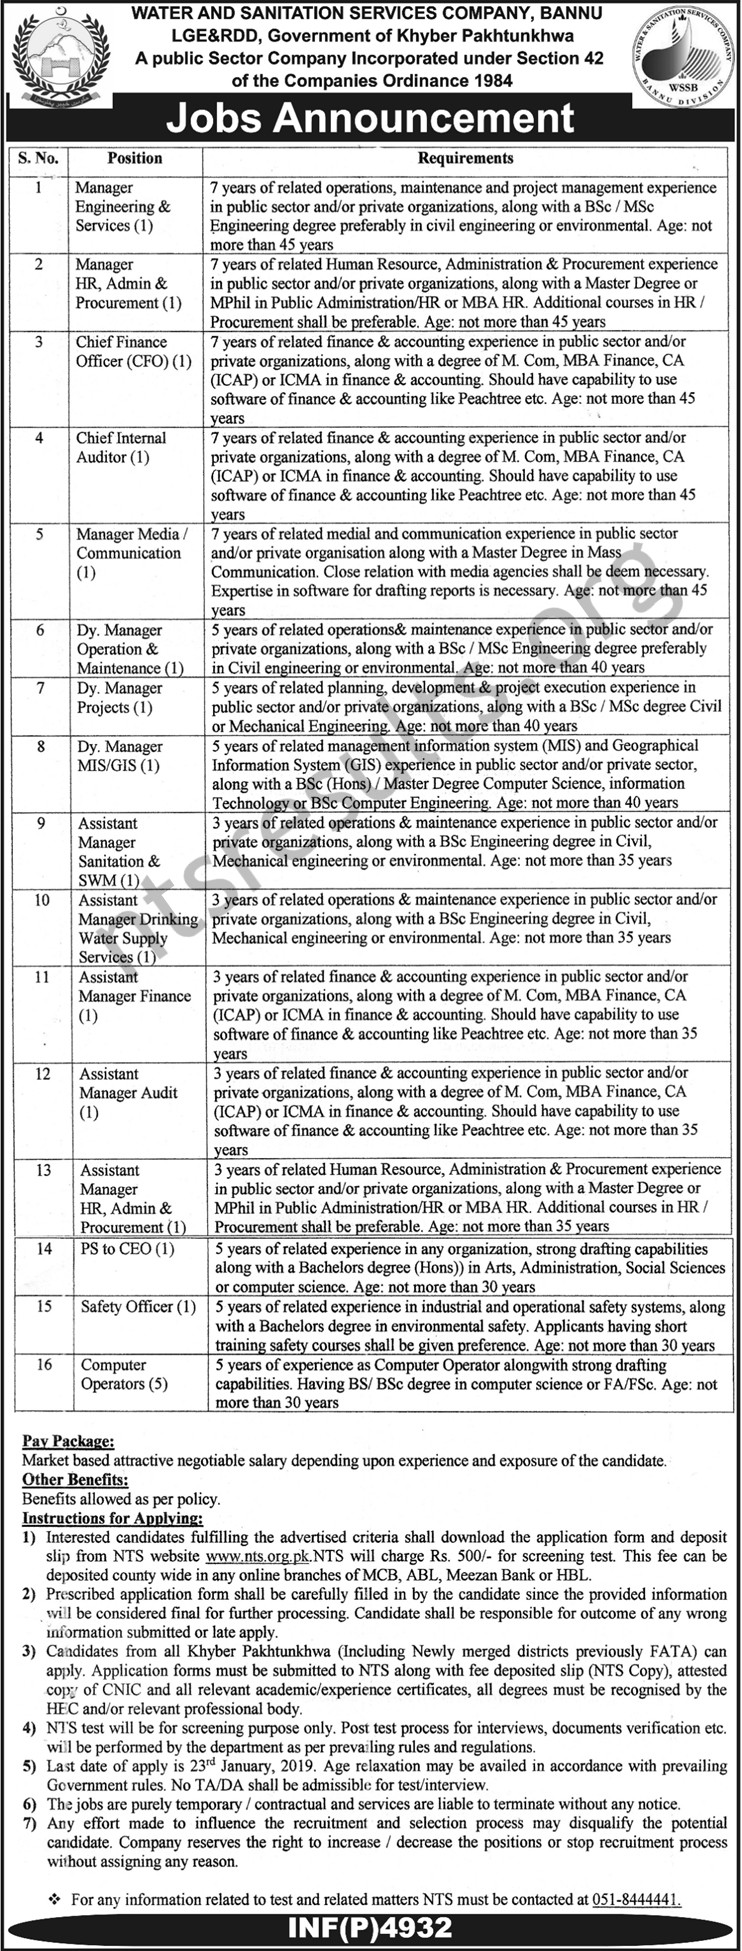 Water and Sanitation Services Company WSSCA Bannu Jobs Via NTS